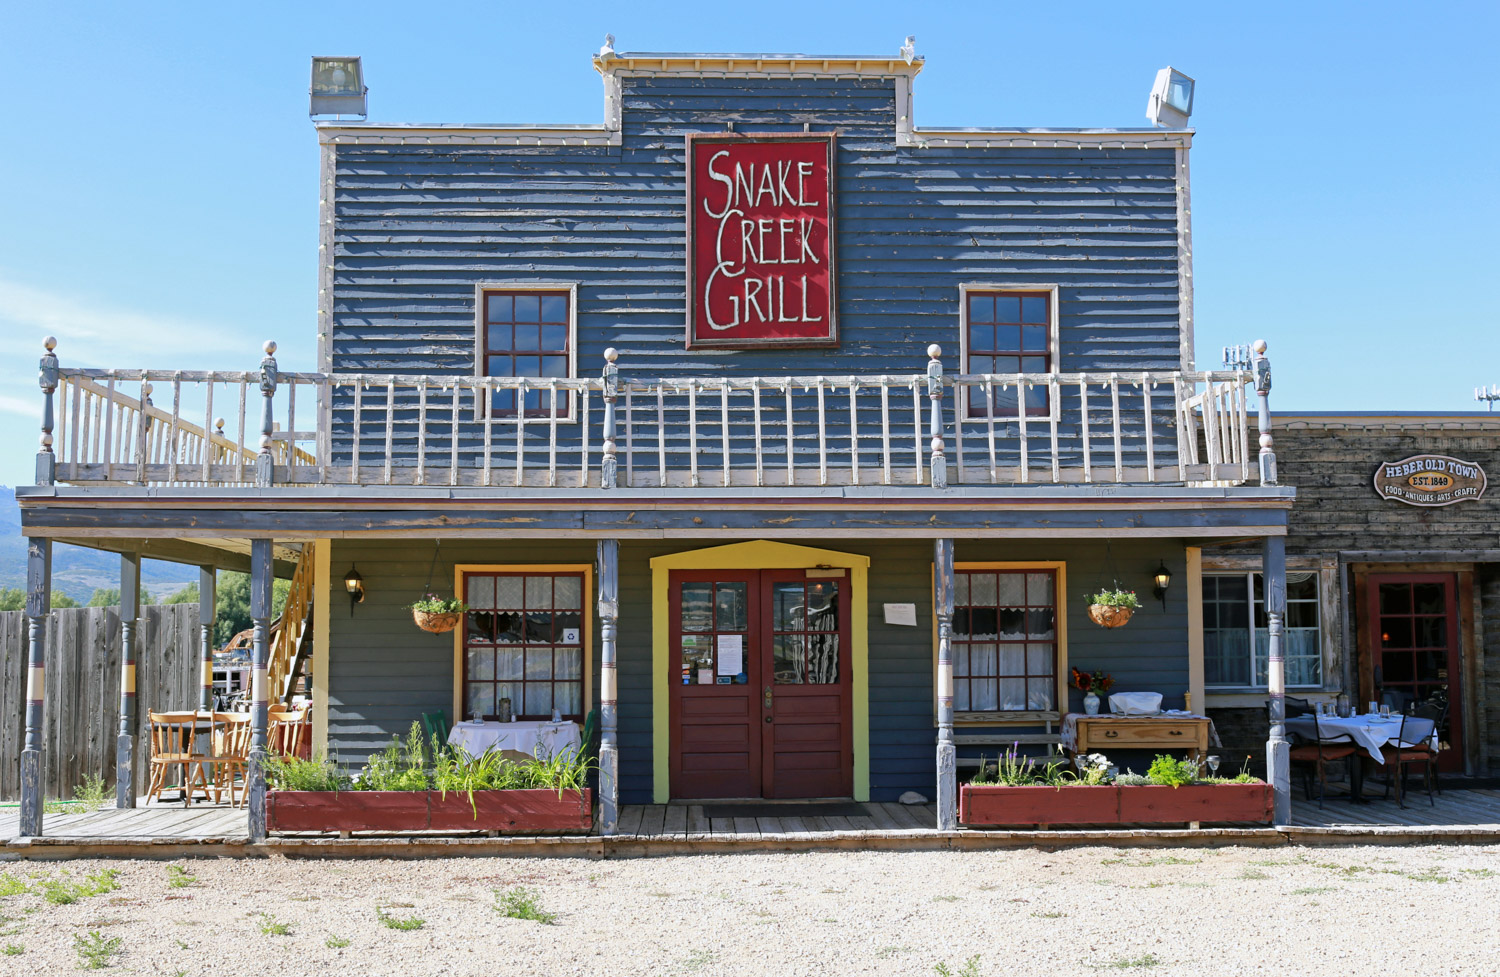 Snake Creek Grill - place&space-21.jpg